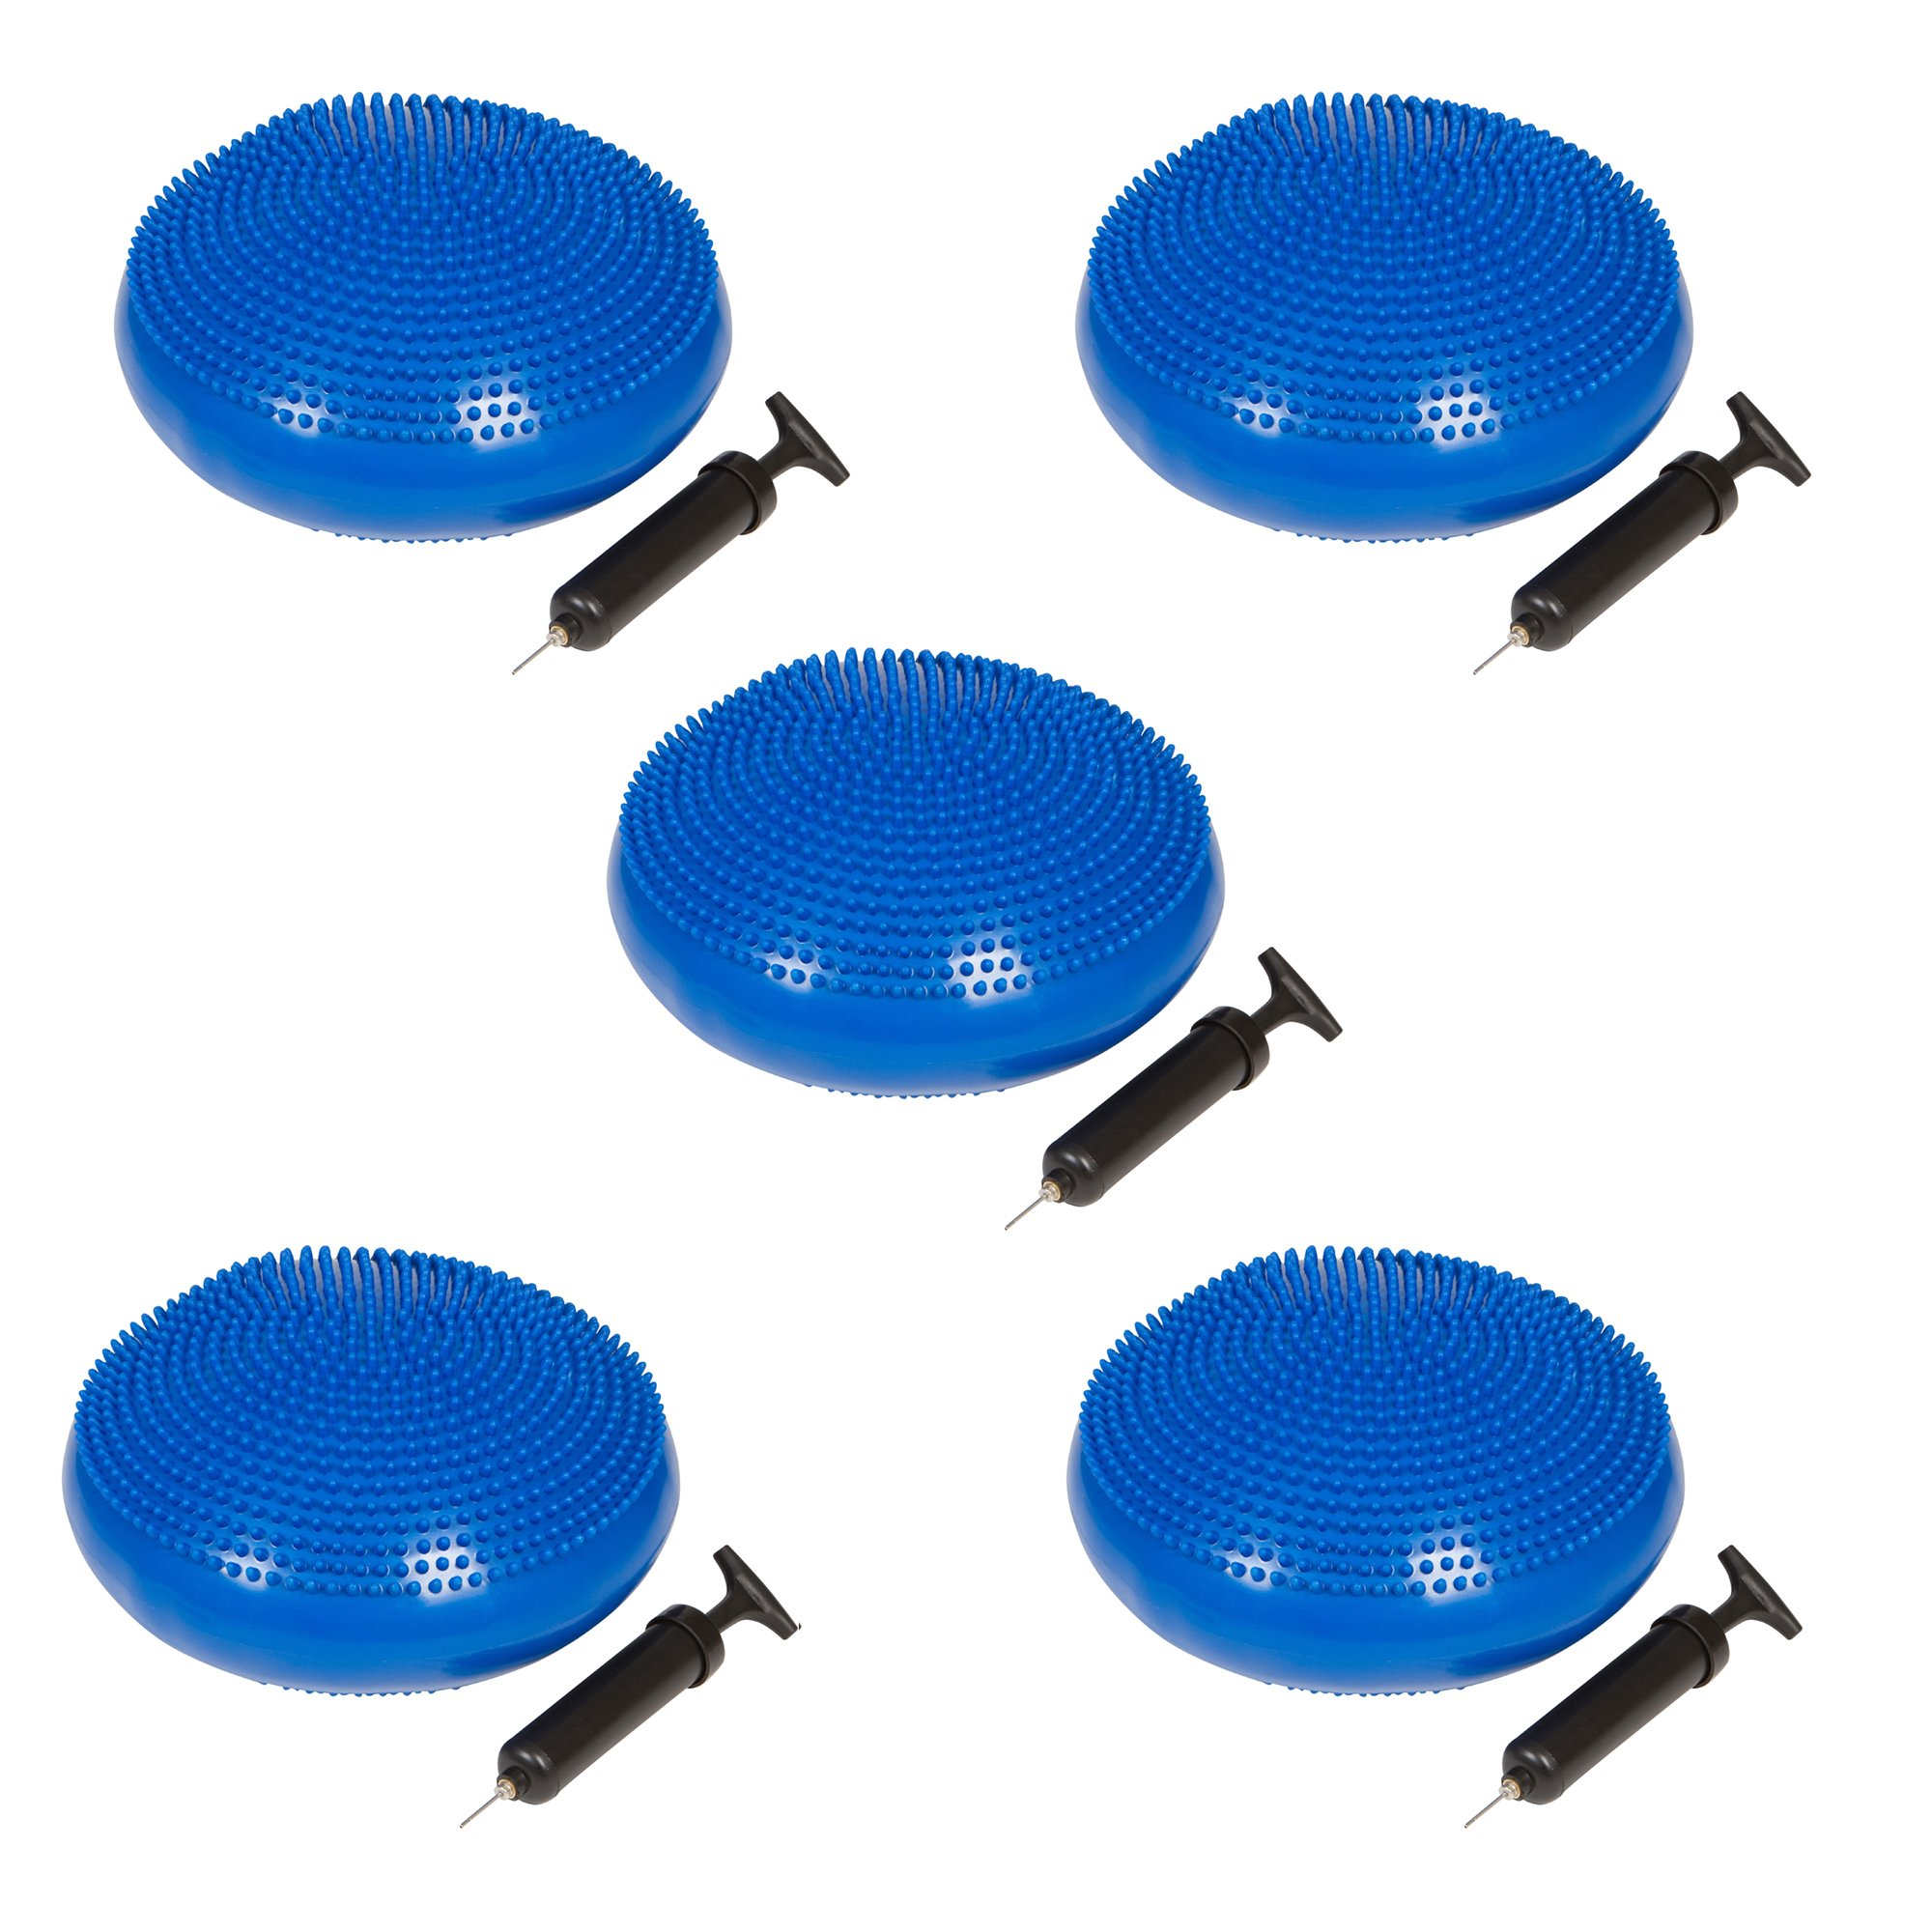 Trademark Innovations PVC Fitness and Balance Disc - 13-Inch Diameter - Set of 5 - (Blue)